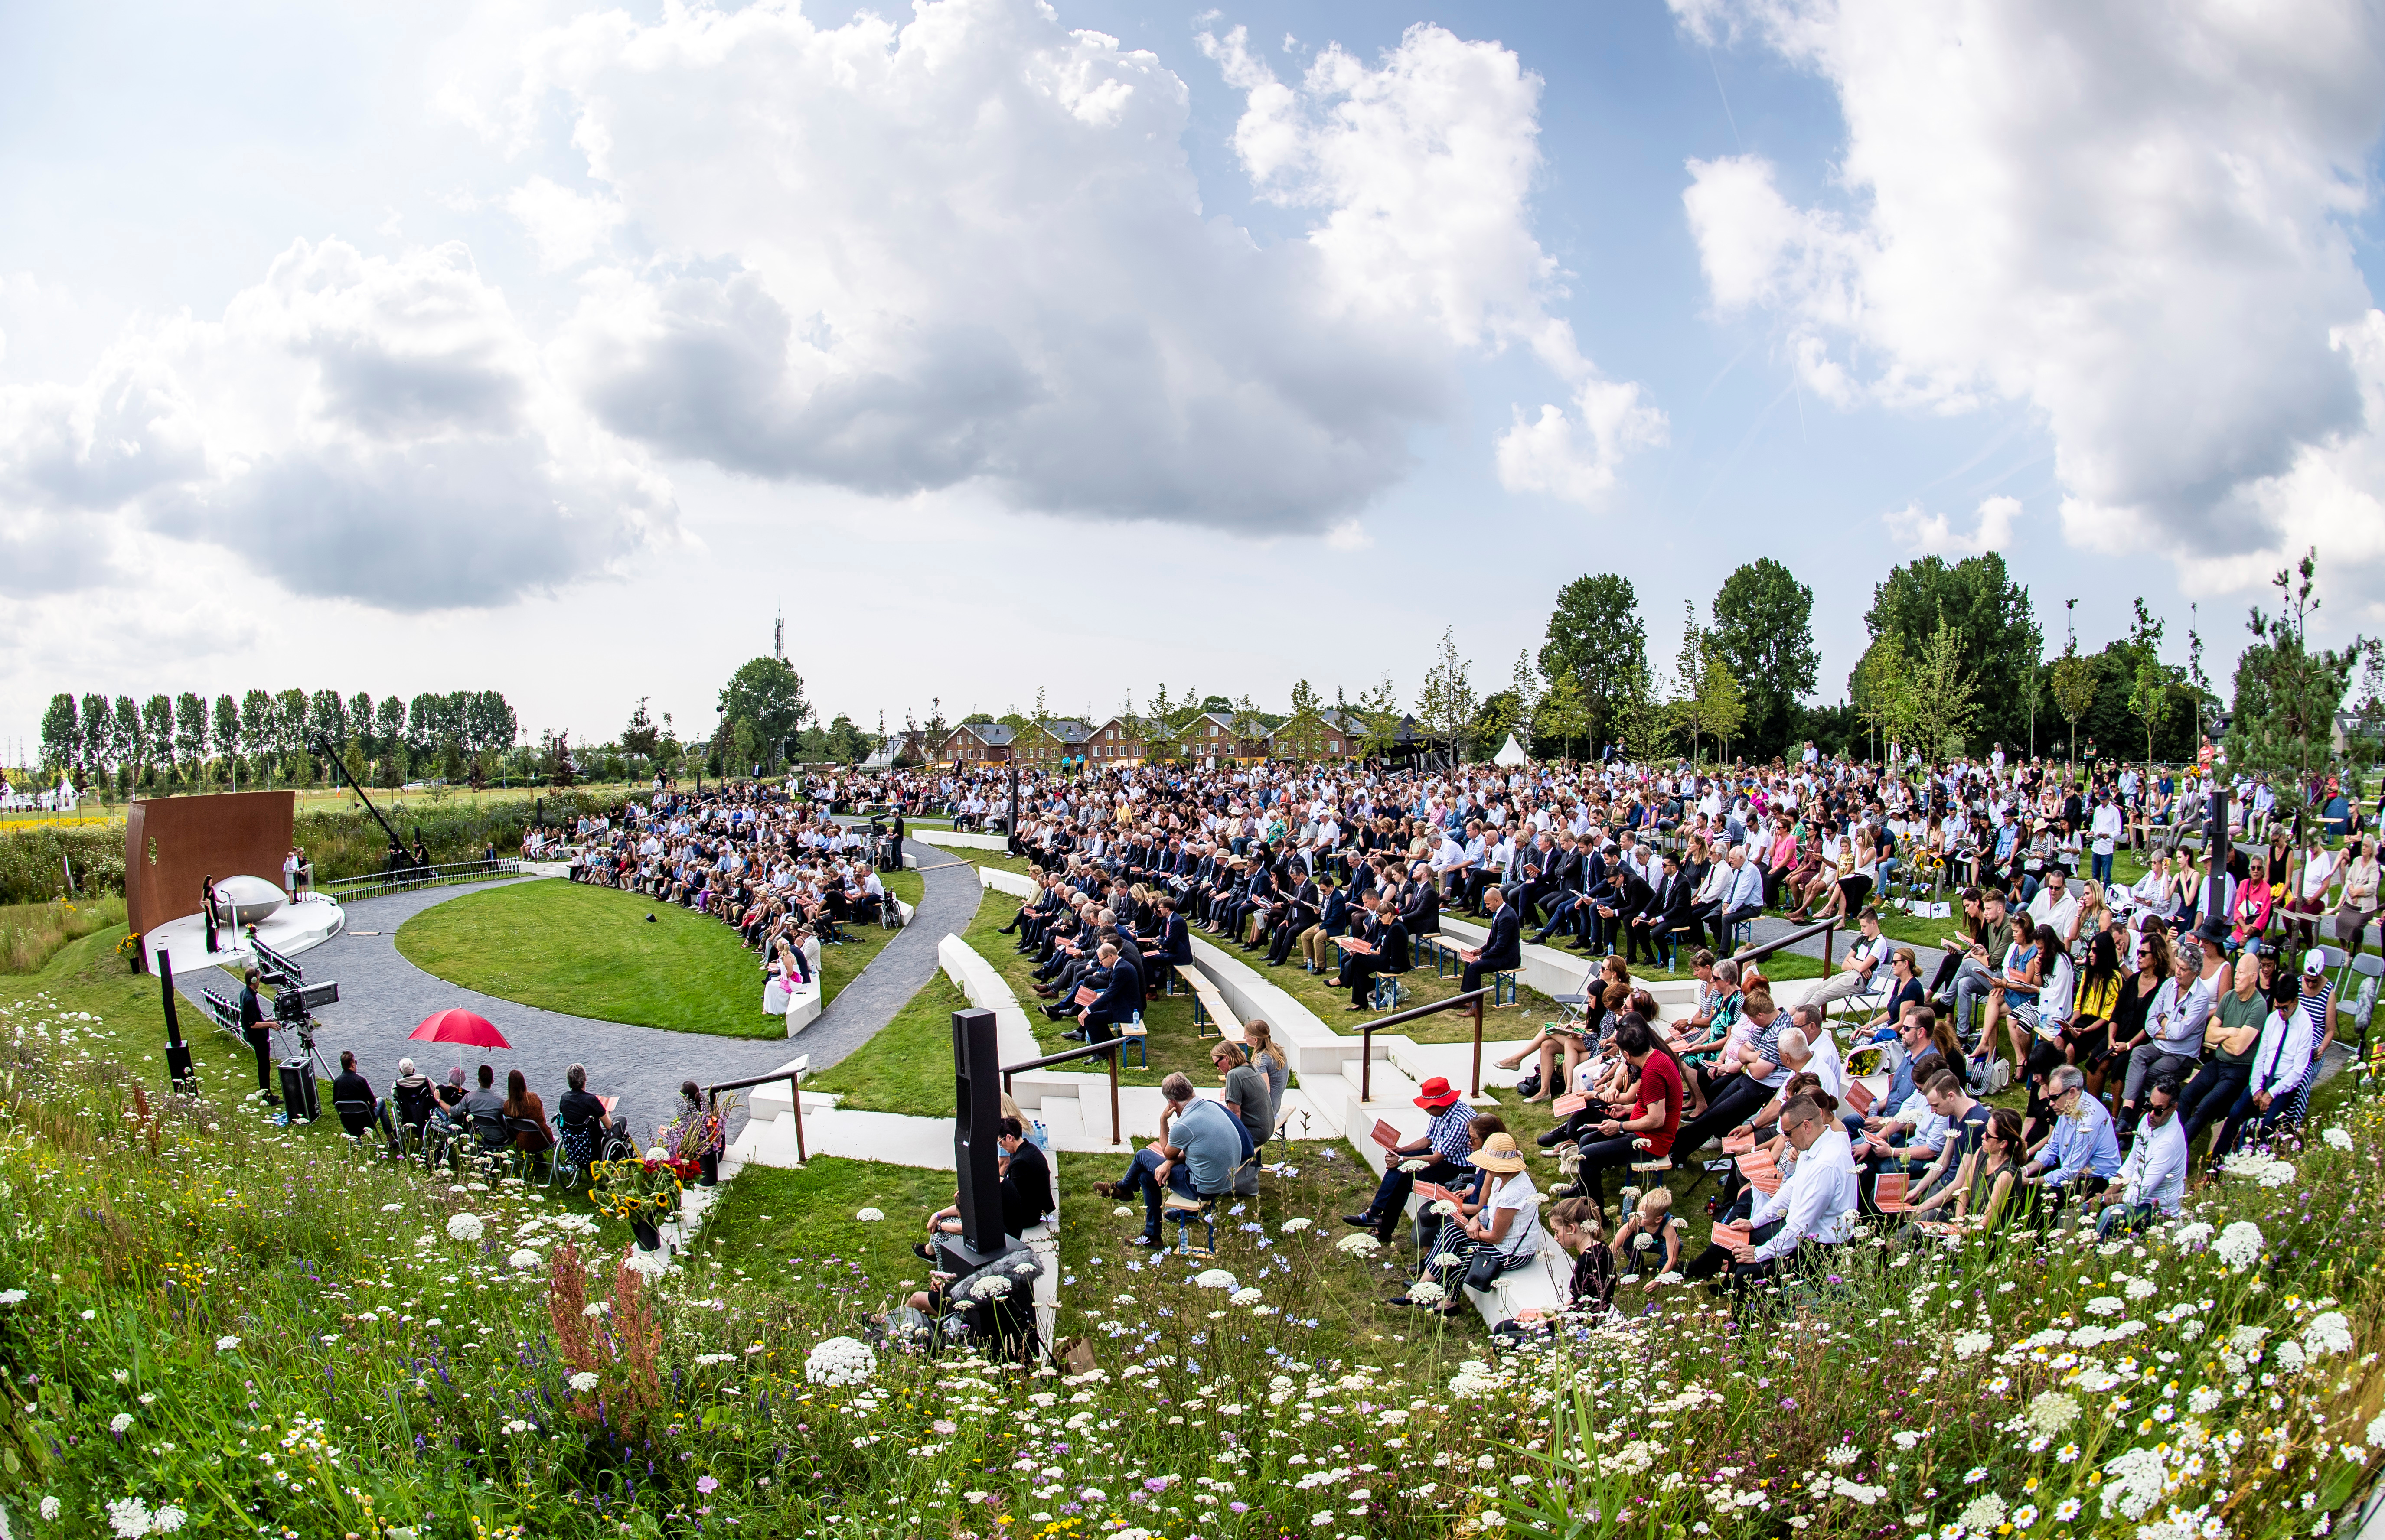 Relatives attend a commemoration ceremony in memory of the victims of the Malaysia Airlines flight MH17 plane crash on the fifth anniversary of the accident, in Vijfhuizen, Netherlands June 17, 2019.  Frank Van Beek/Pool via REUTERS